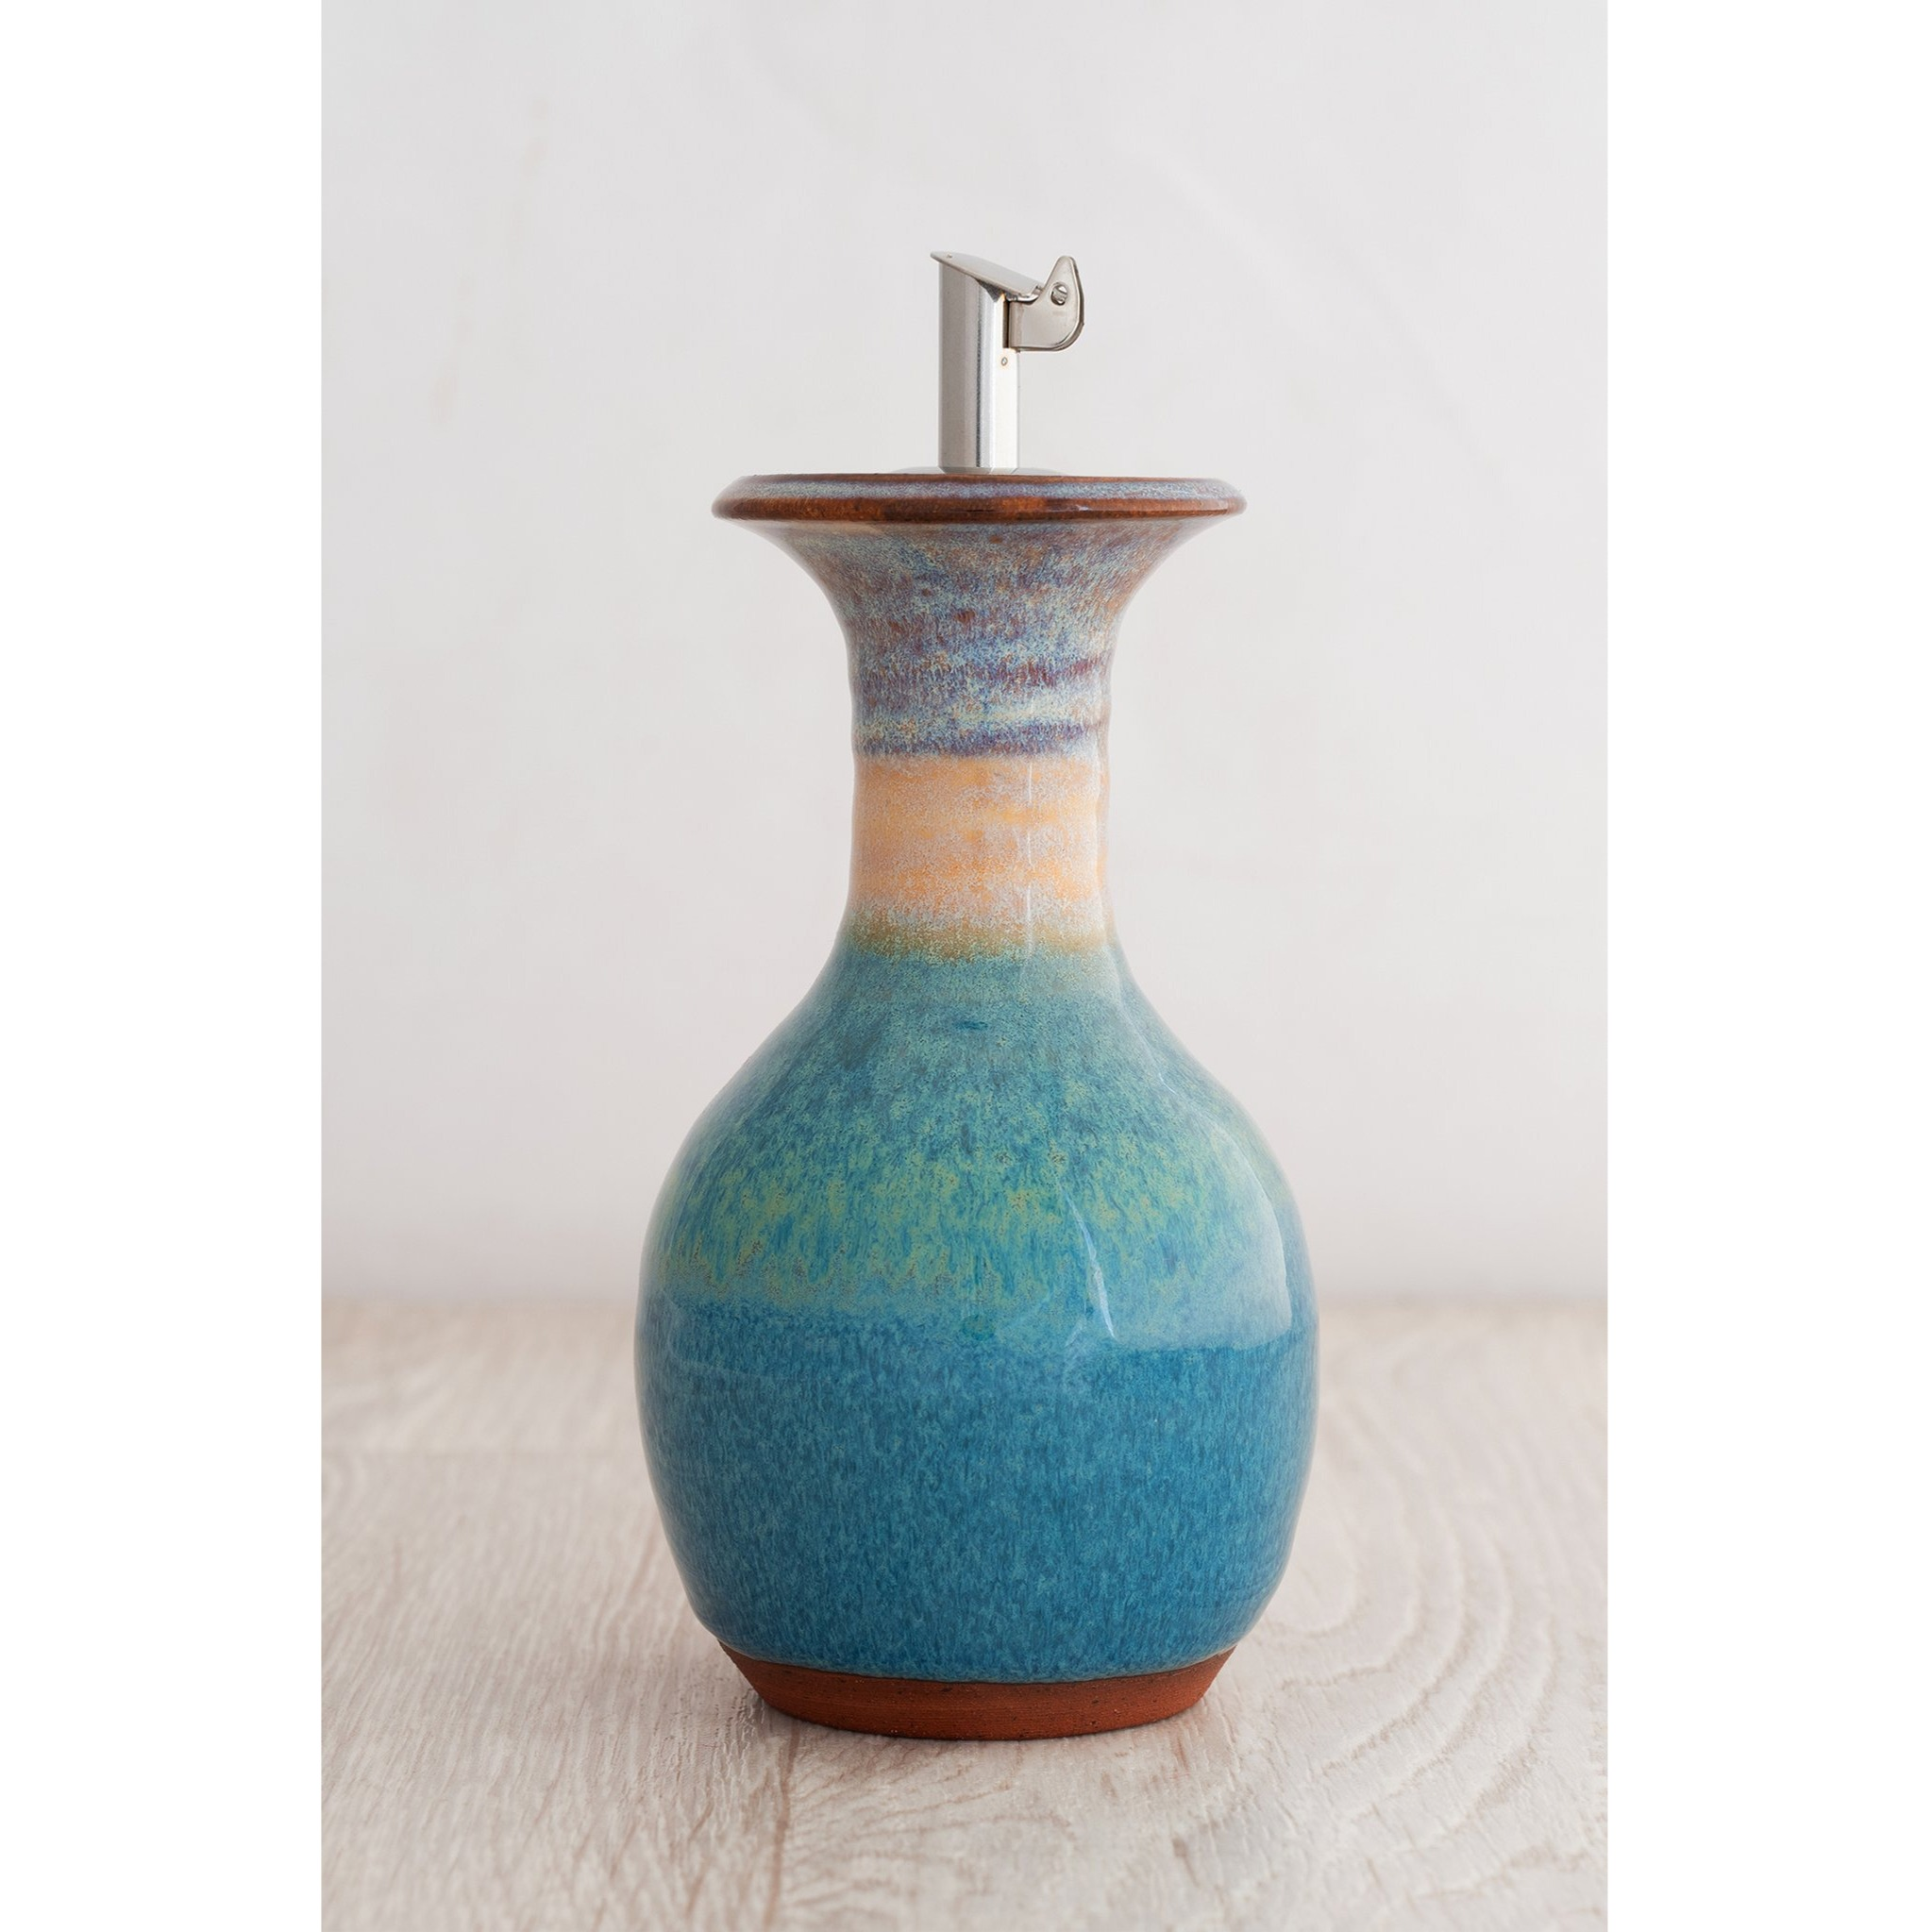 Sand Bay Oil Decanter by Rupert Blamire